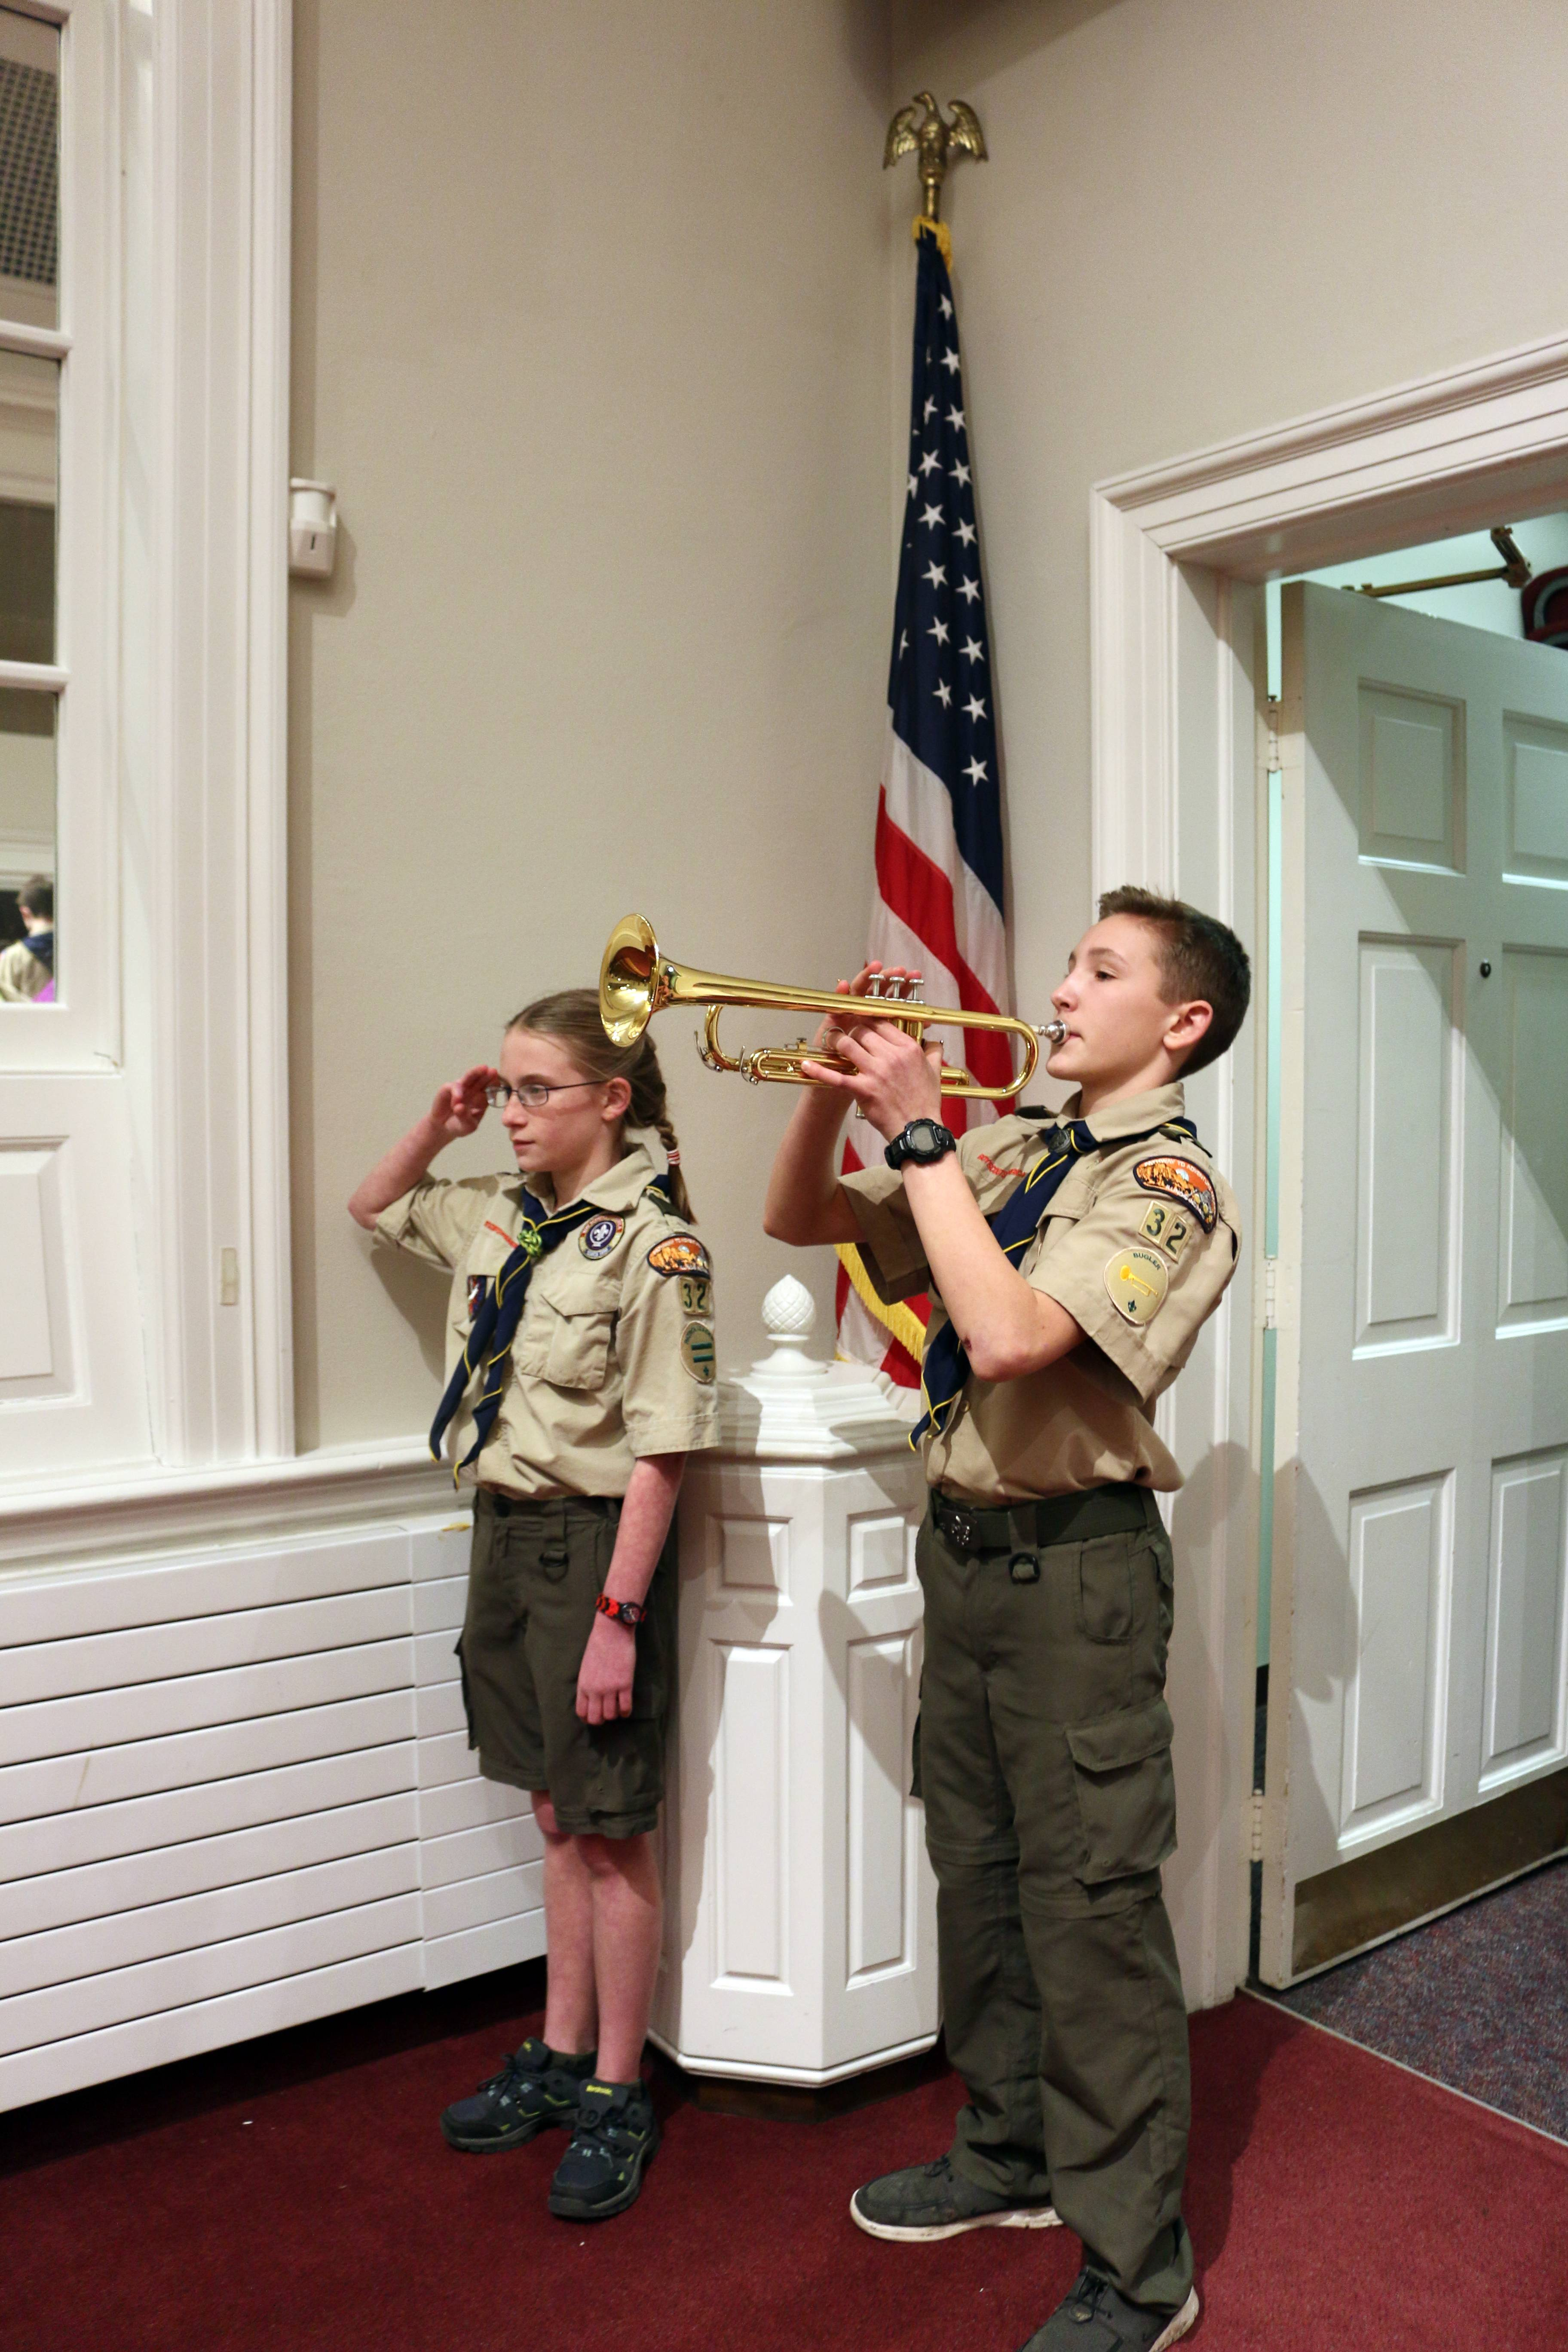 Scouts Madeline Painter and Bill Beck open a recent meeting of Arlington Heights-based Boy Scout Troop 32.